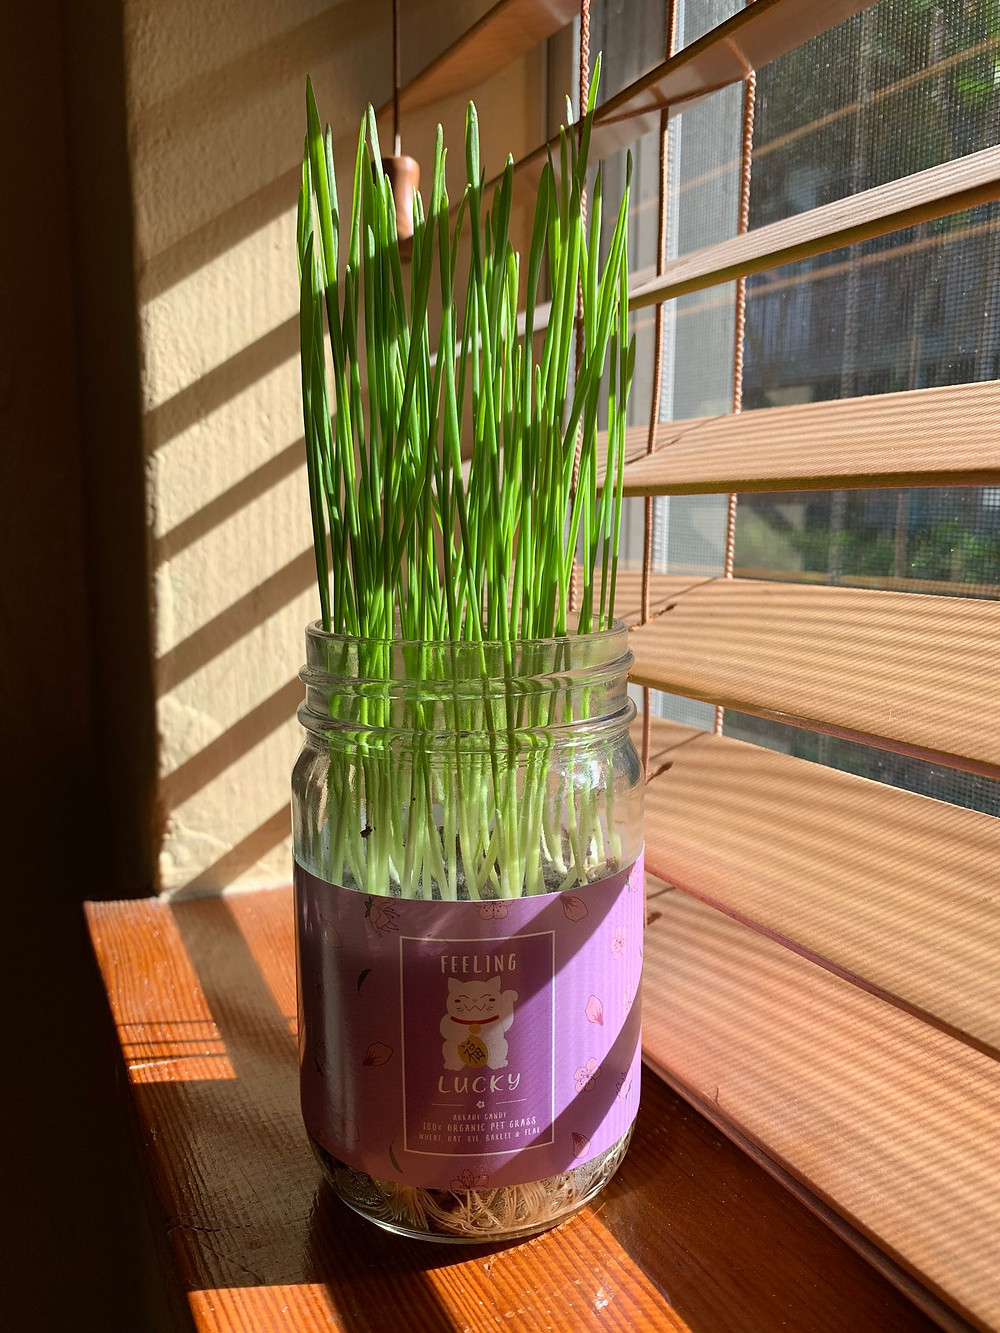 Wheatgrass Growing Kit fully grown by a windowsill